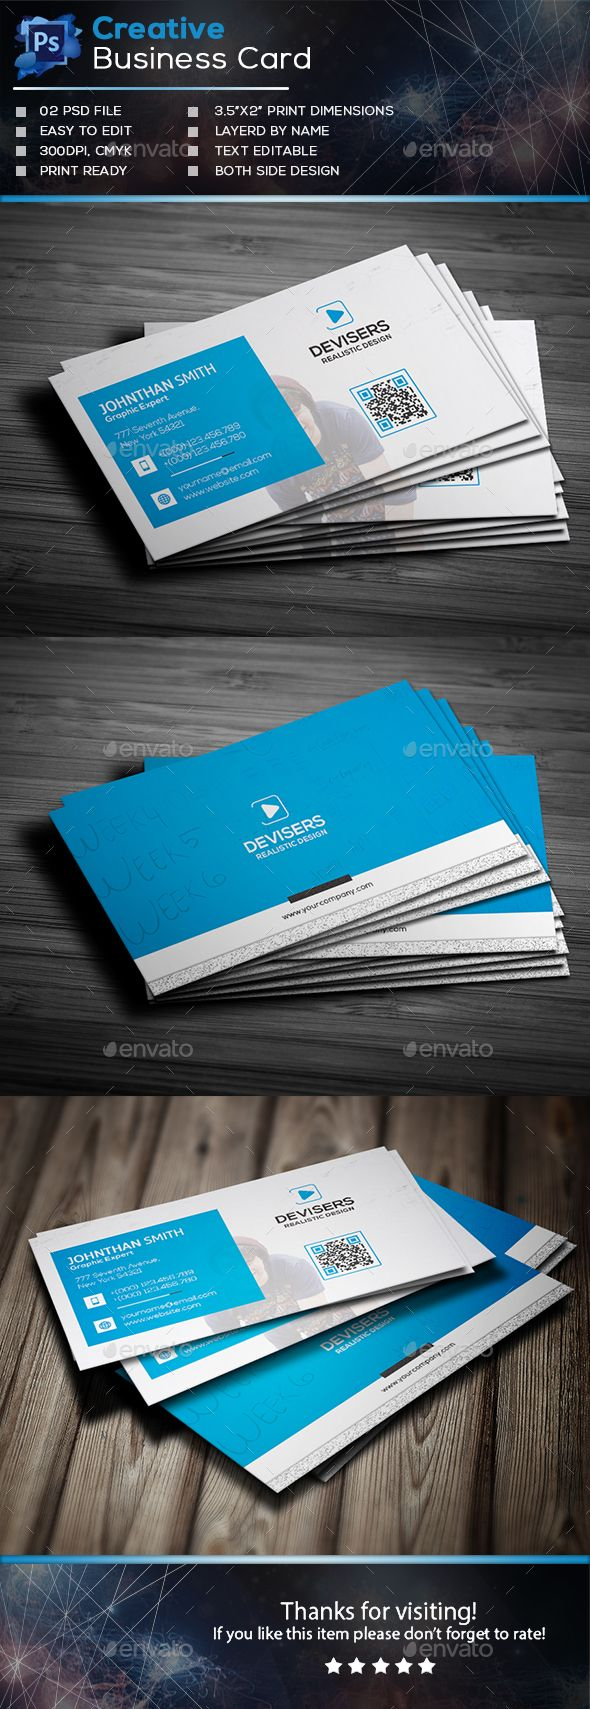 Creative business card creative business cards business card creative business card creative business cards accmission Choice Image